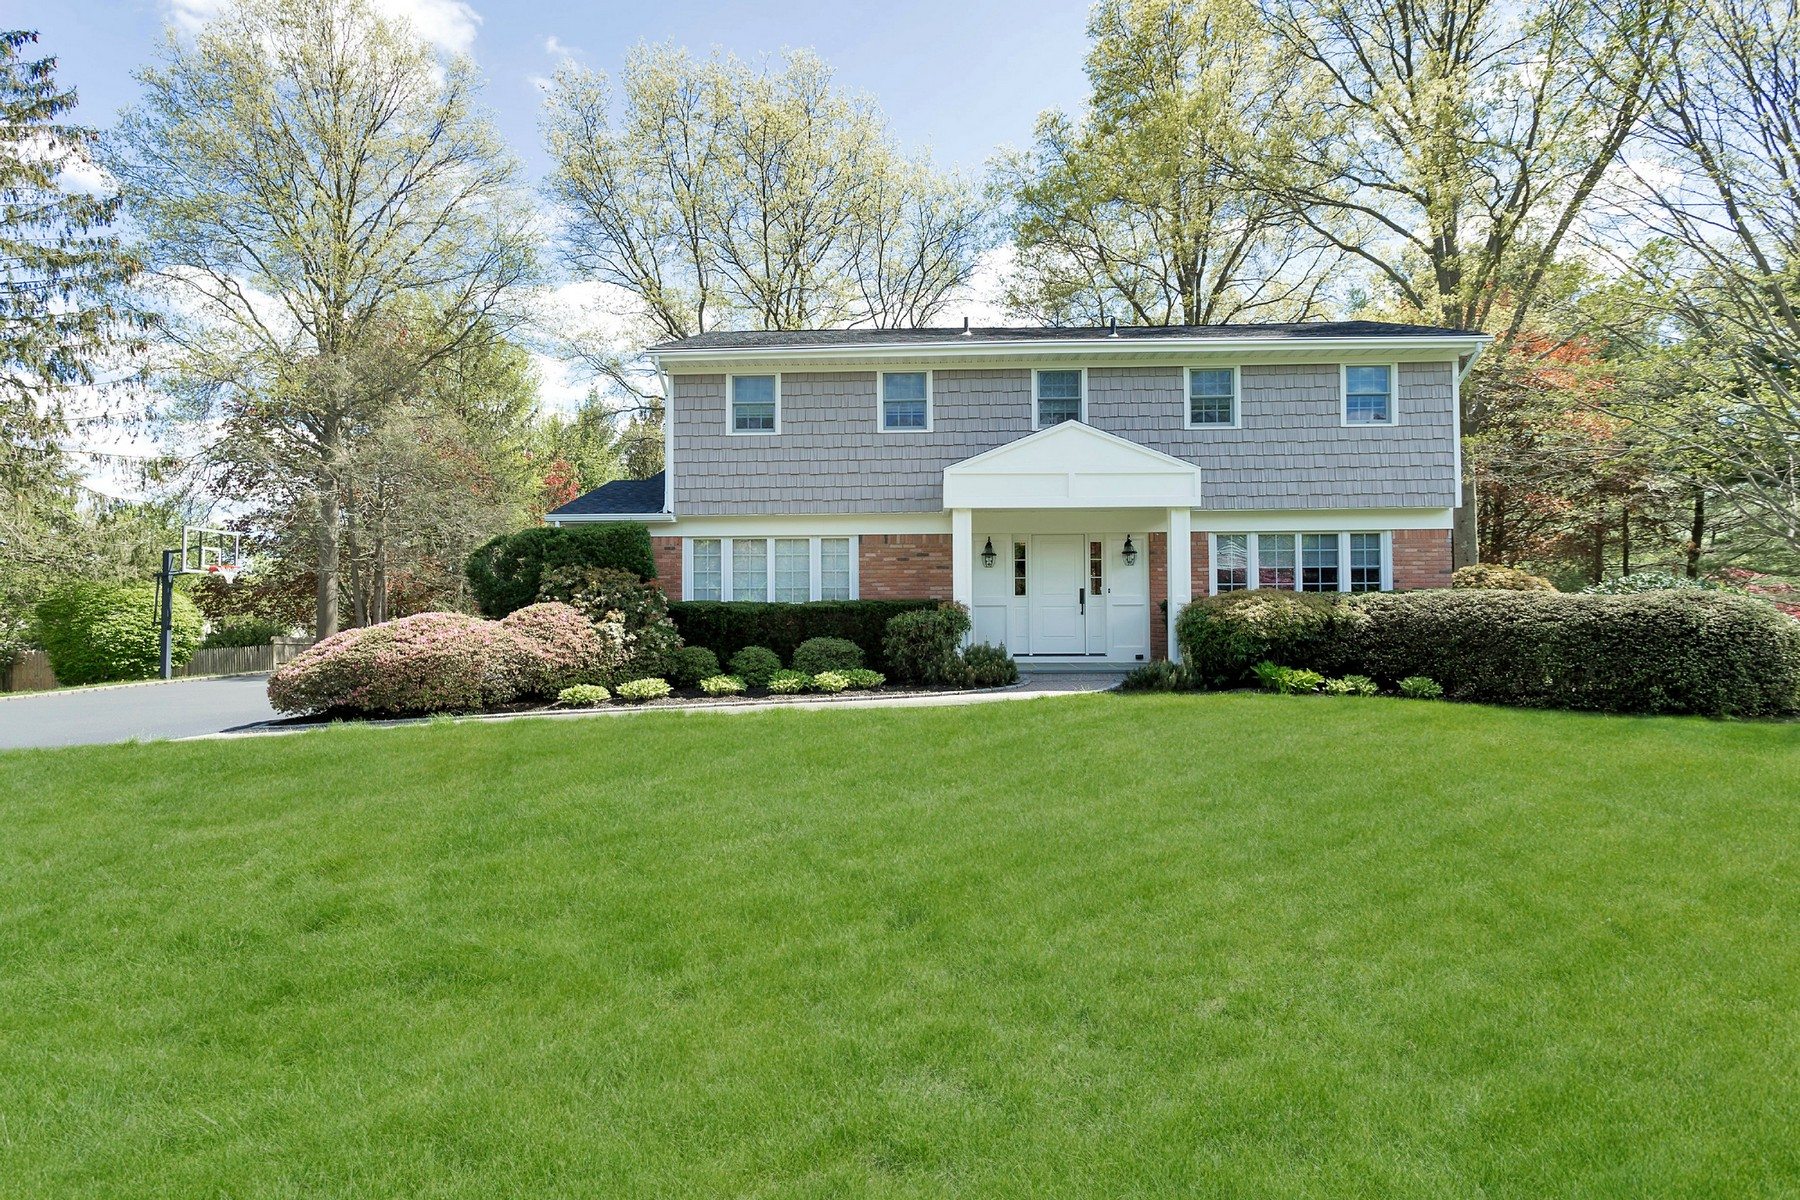 Single Family Home for Sale at Splanch 90 Northgate Dr Syosset, New York, 11791 United States